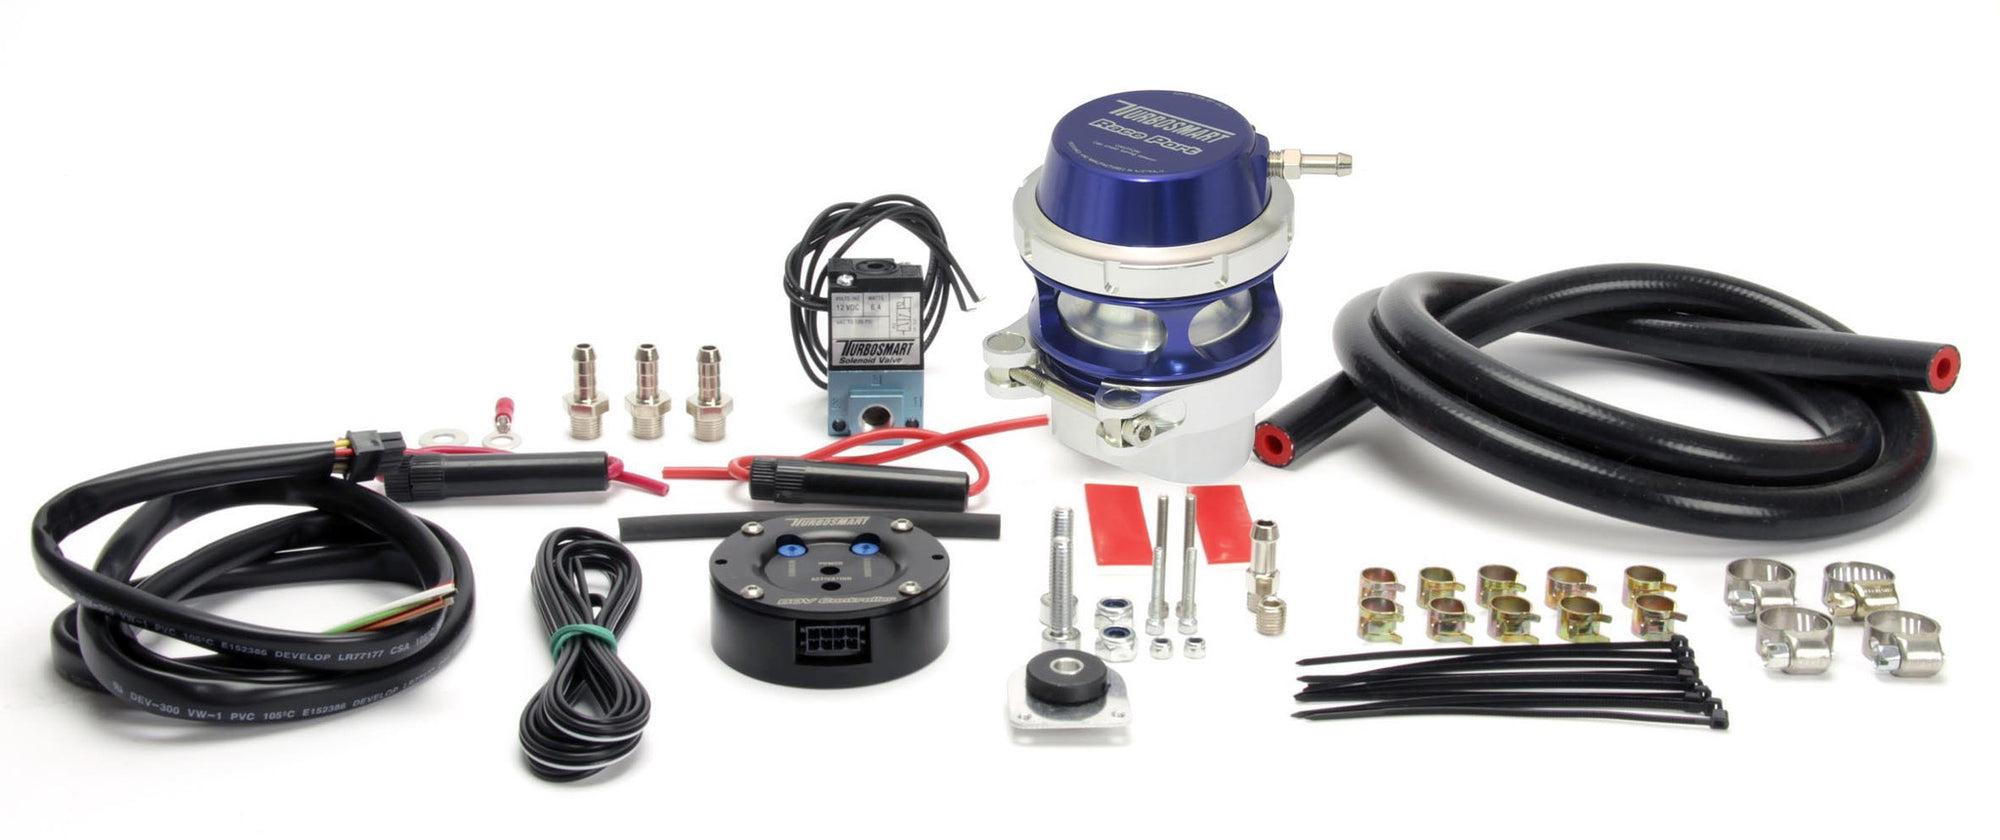 BOV controller kit (controller + custom Raceport) Blue